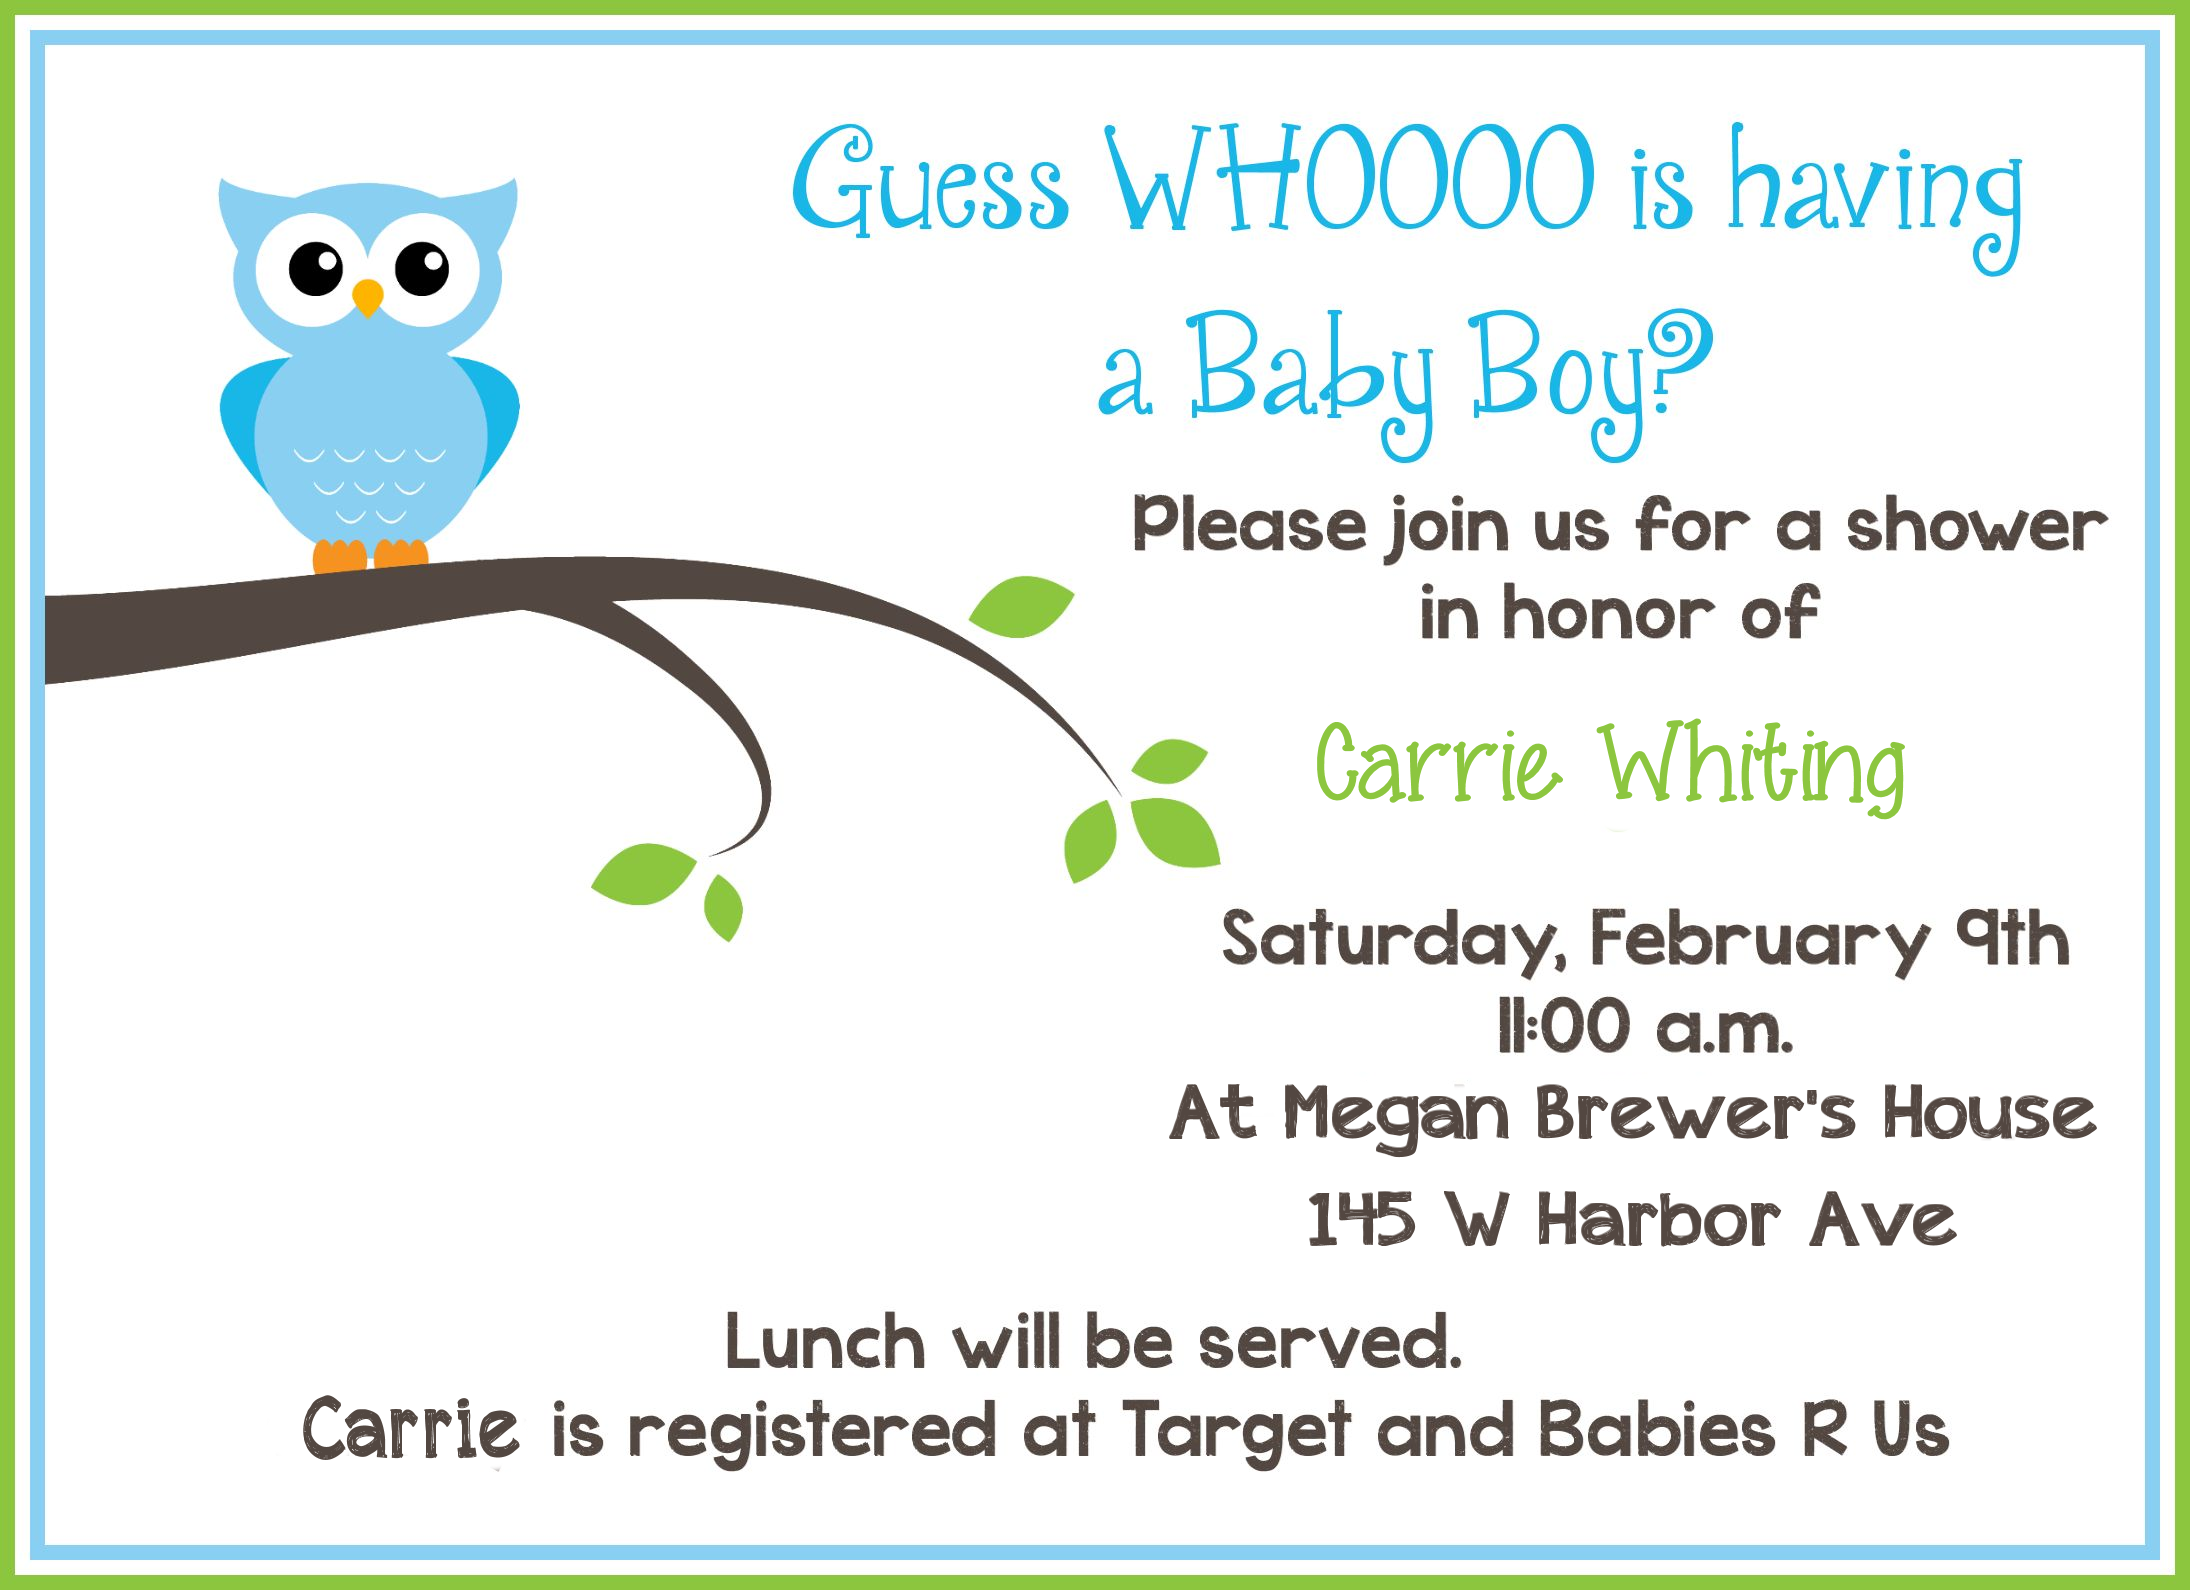 Baby Shower Invitation: Baby Shower Invitation Cards Free Samples